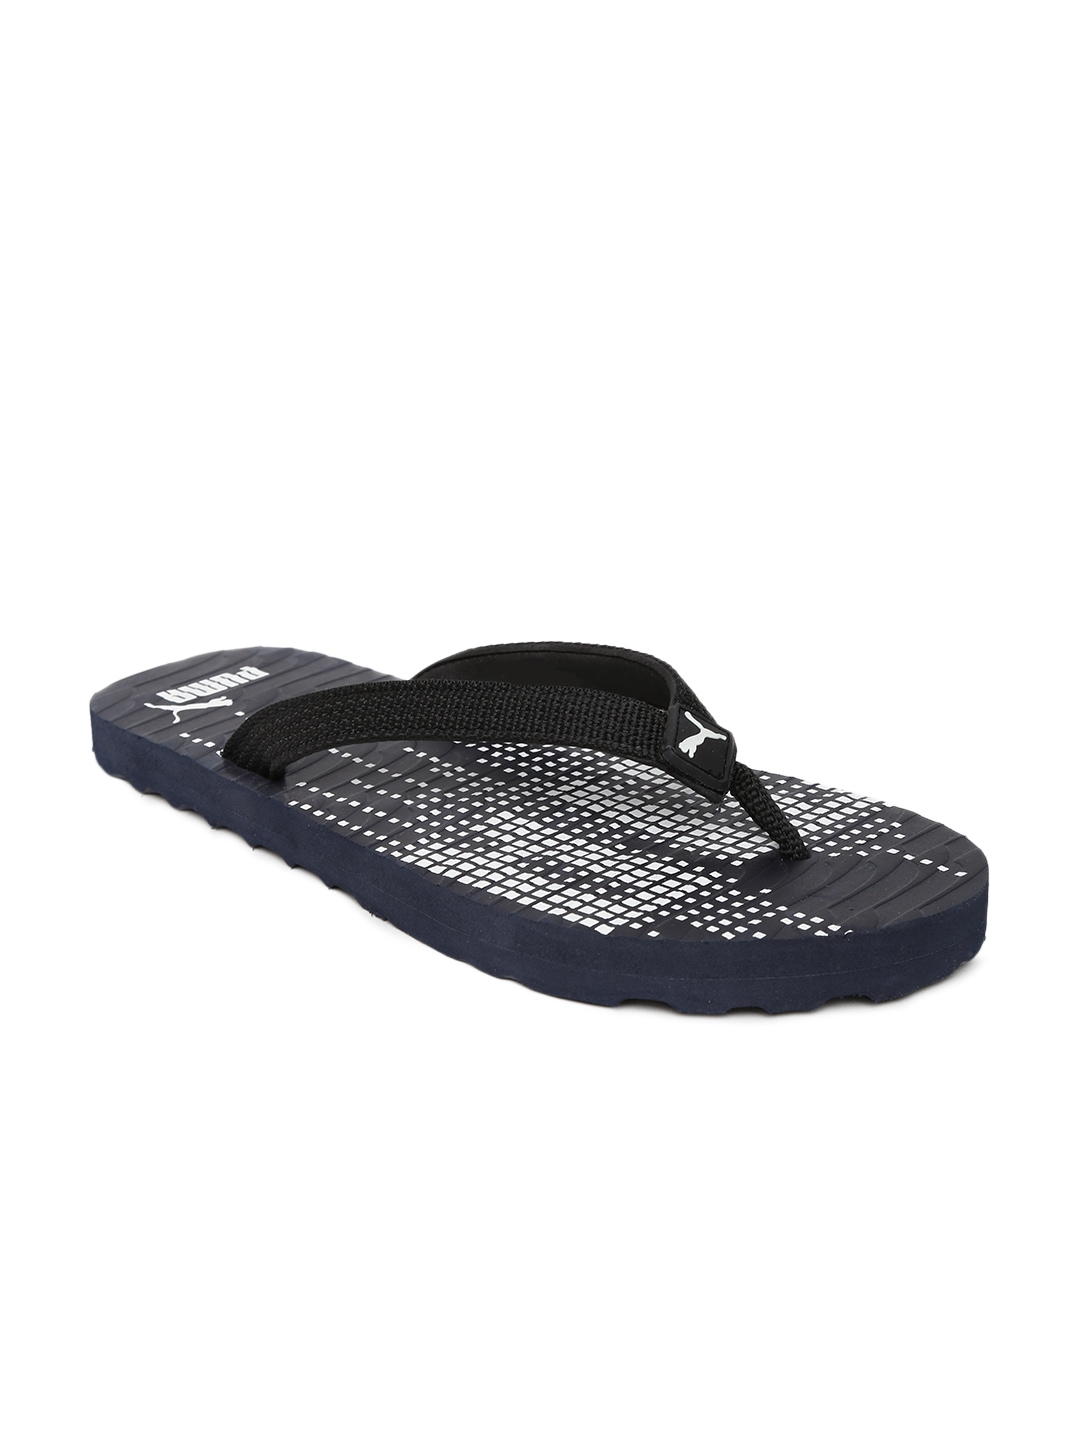 myntra puma unisex black navy printed flip flops 868136. Black Bedroom Furniture Sets. Home Design Ideas